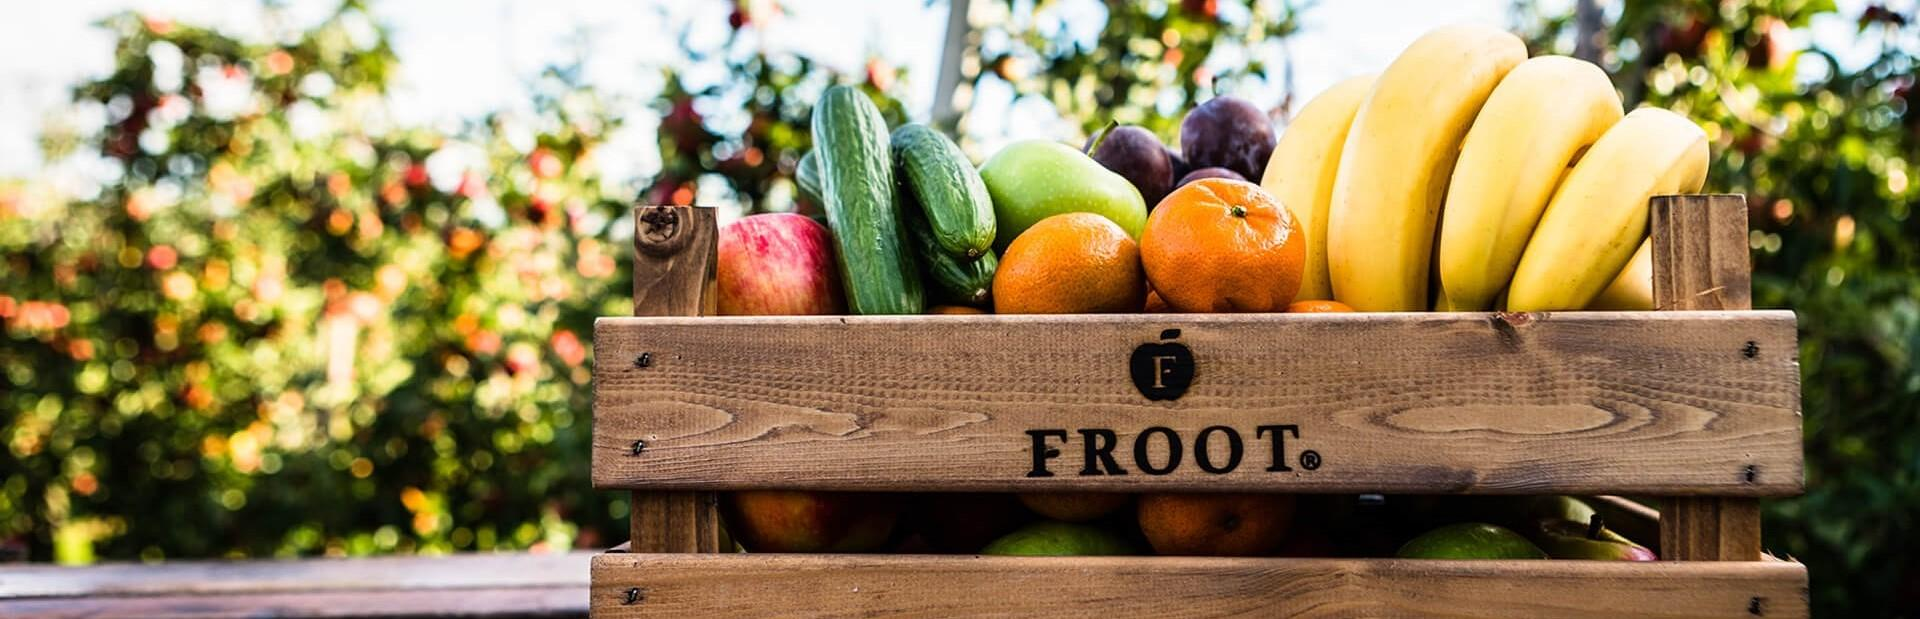 Froot-Fruitgaard